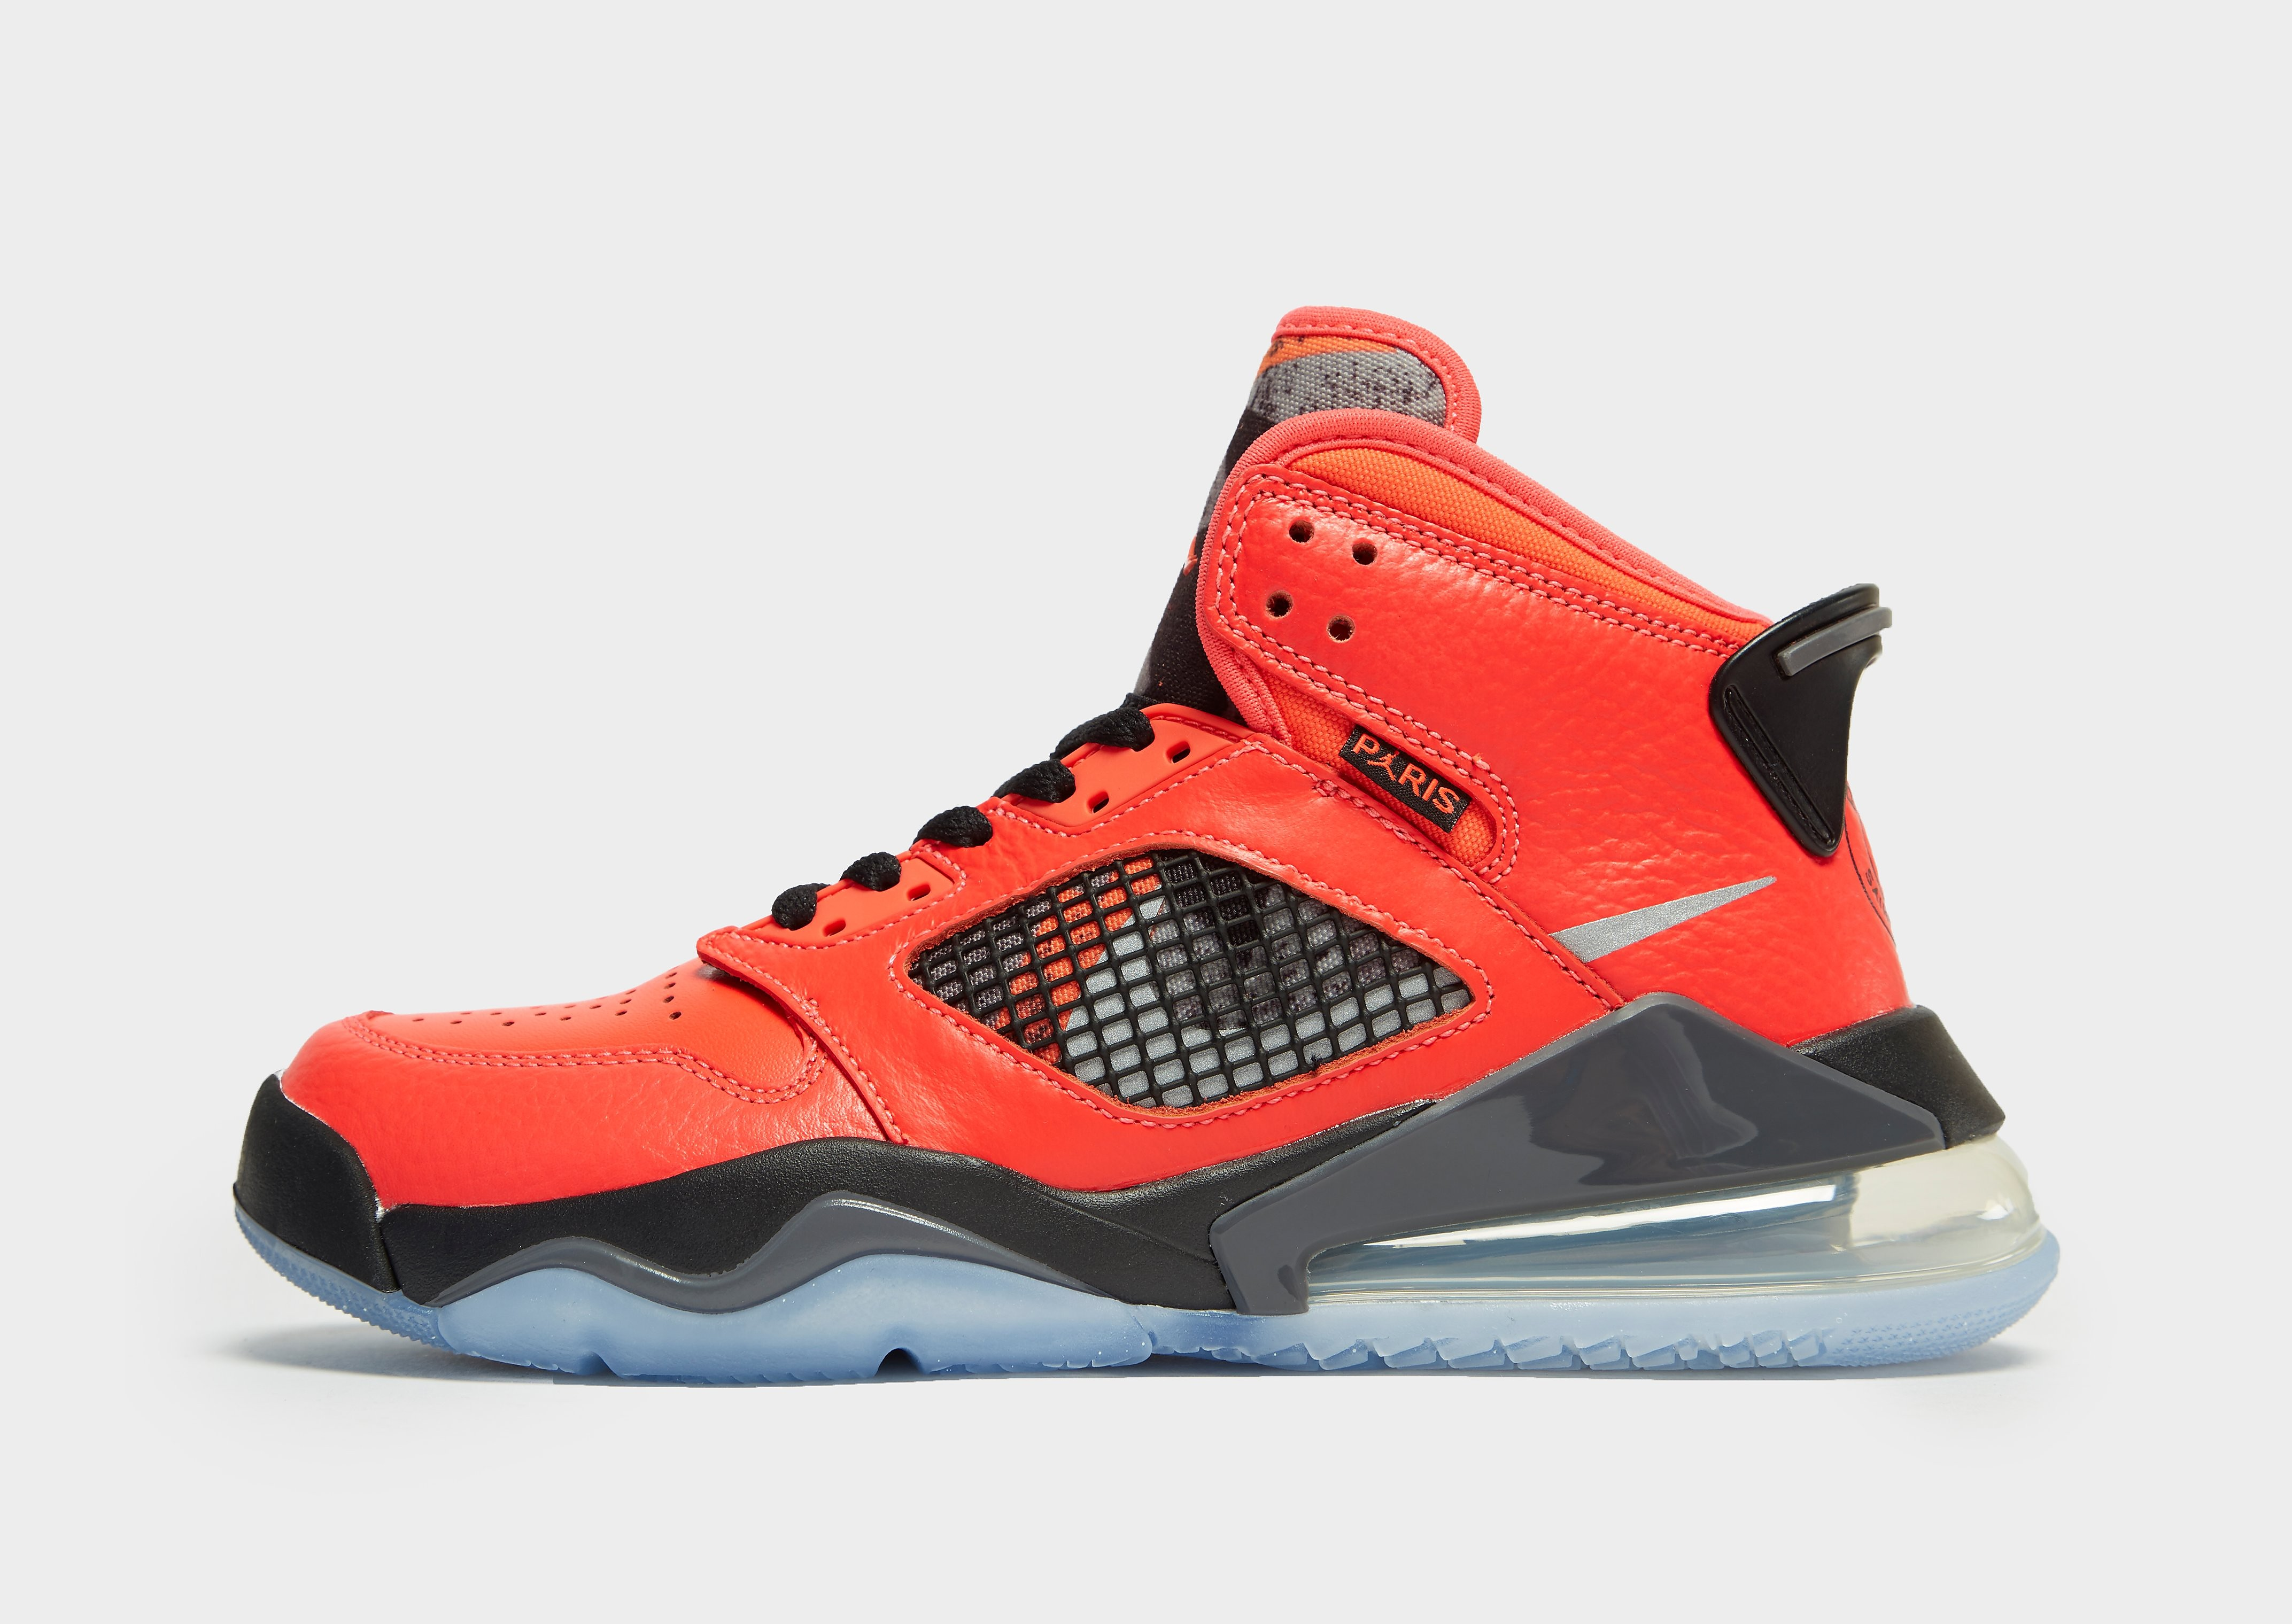 Jordan Air Mars 270 'PSG' Rood Kind